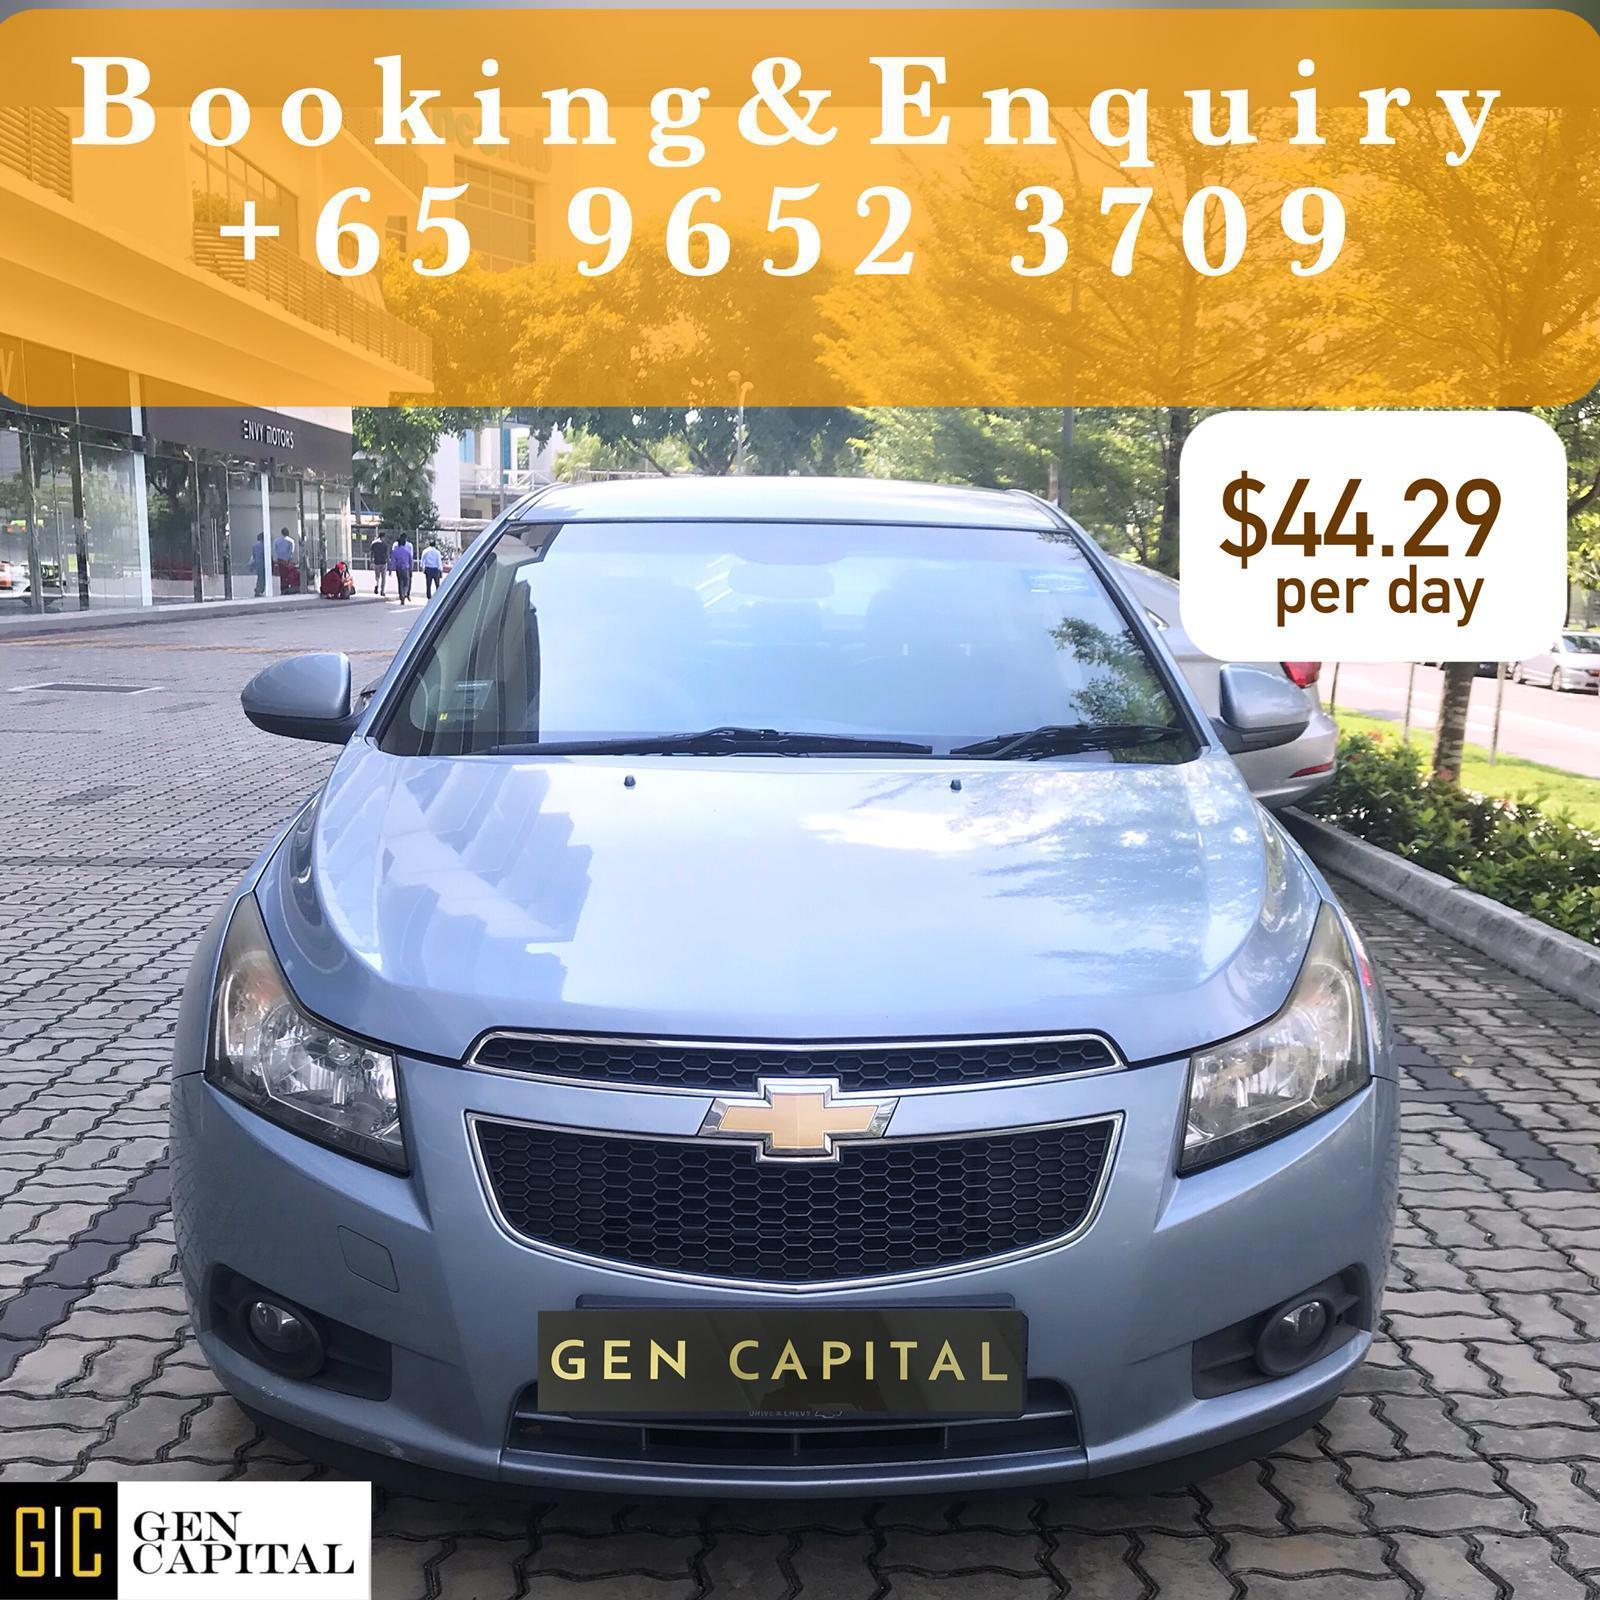 Chevrolet Cruze 1.6A Grab Gojek Ryde Tada & Non PHV Car Rental in Singapore!